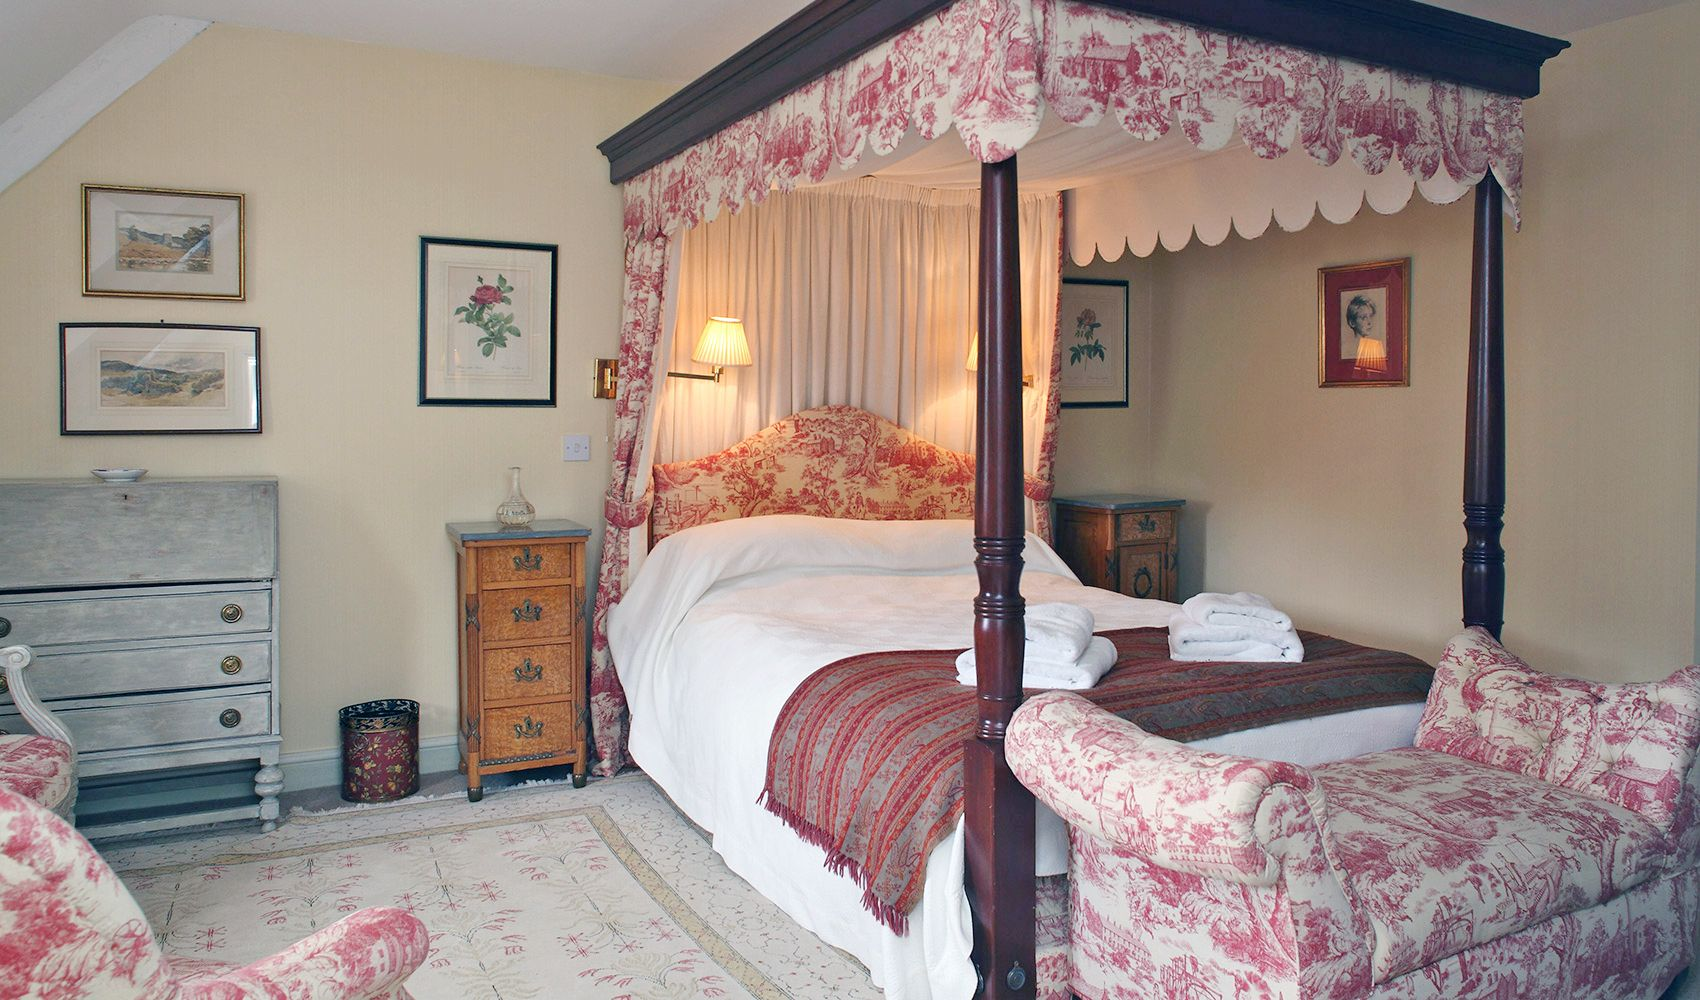 First floor: Master bedroom with views across the orchard to the Abbey beyond